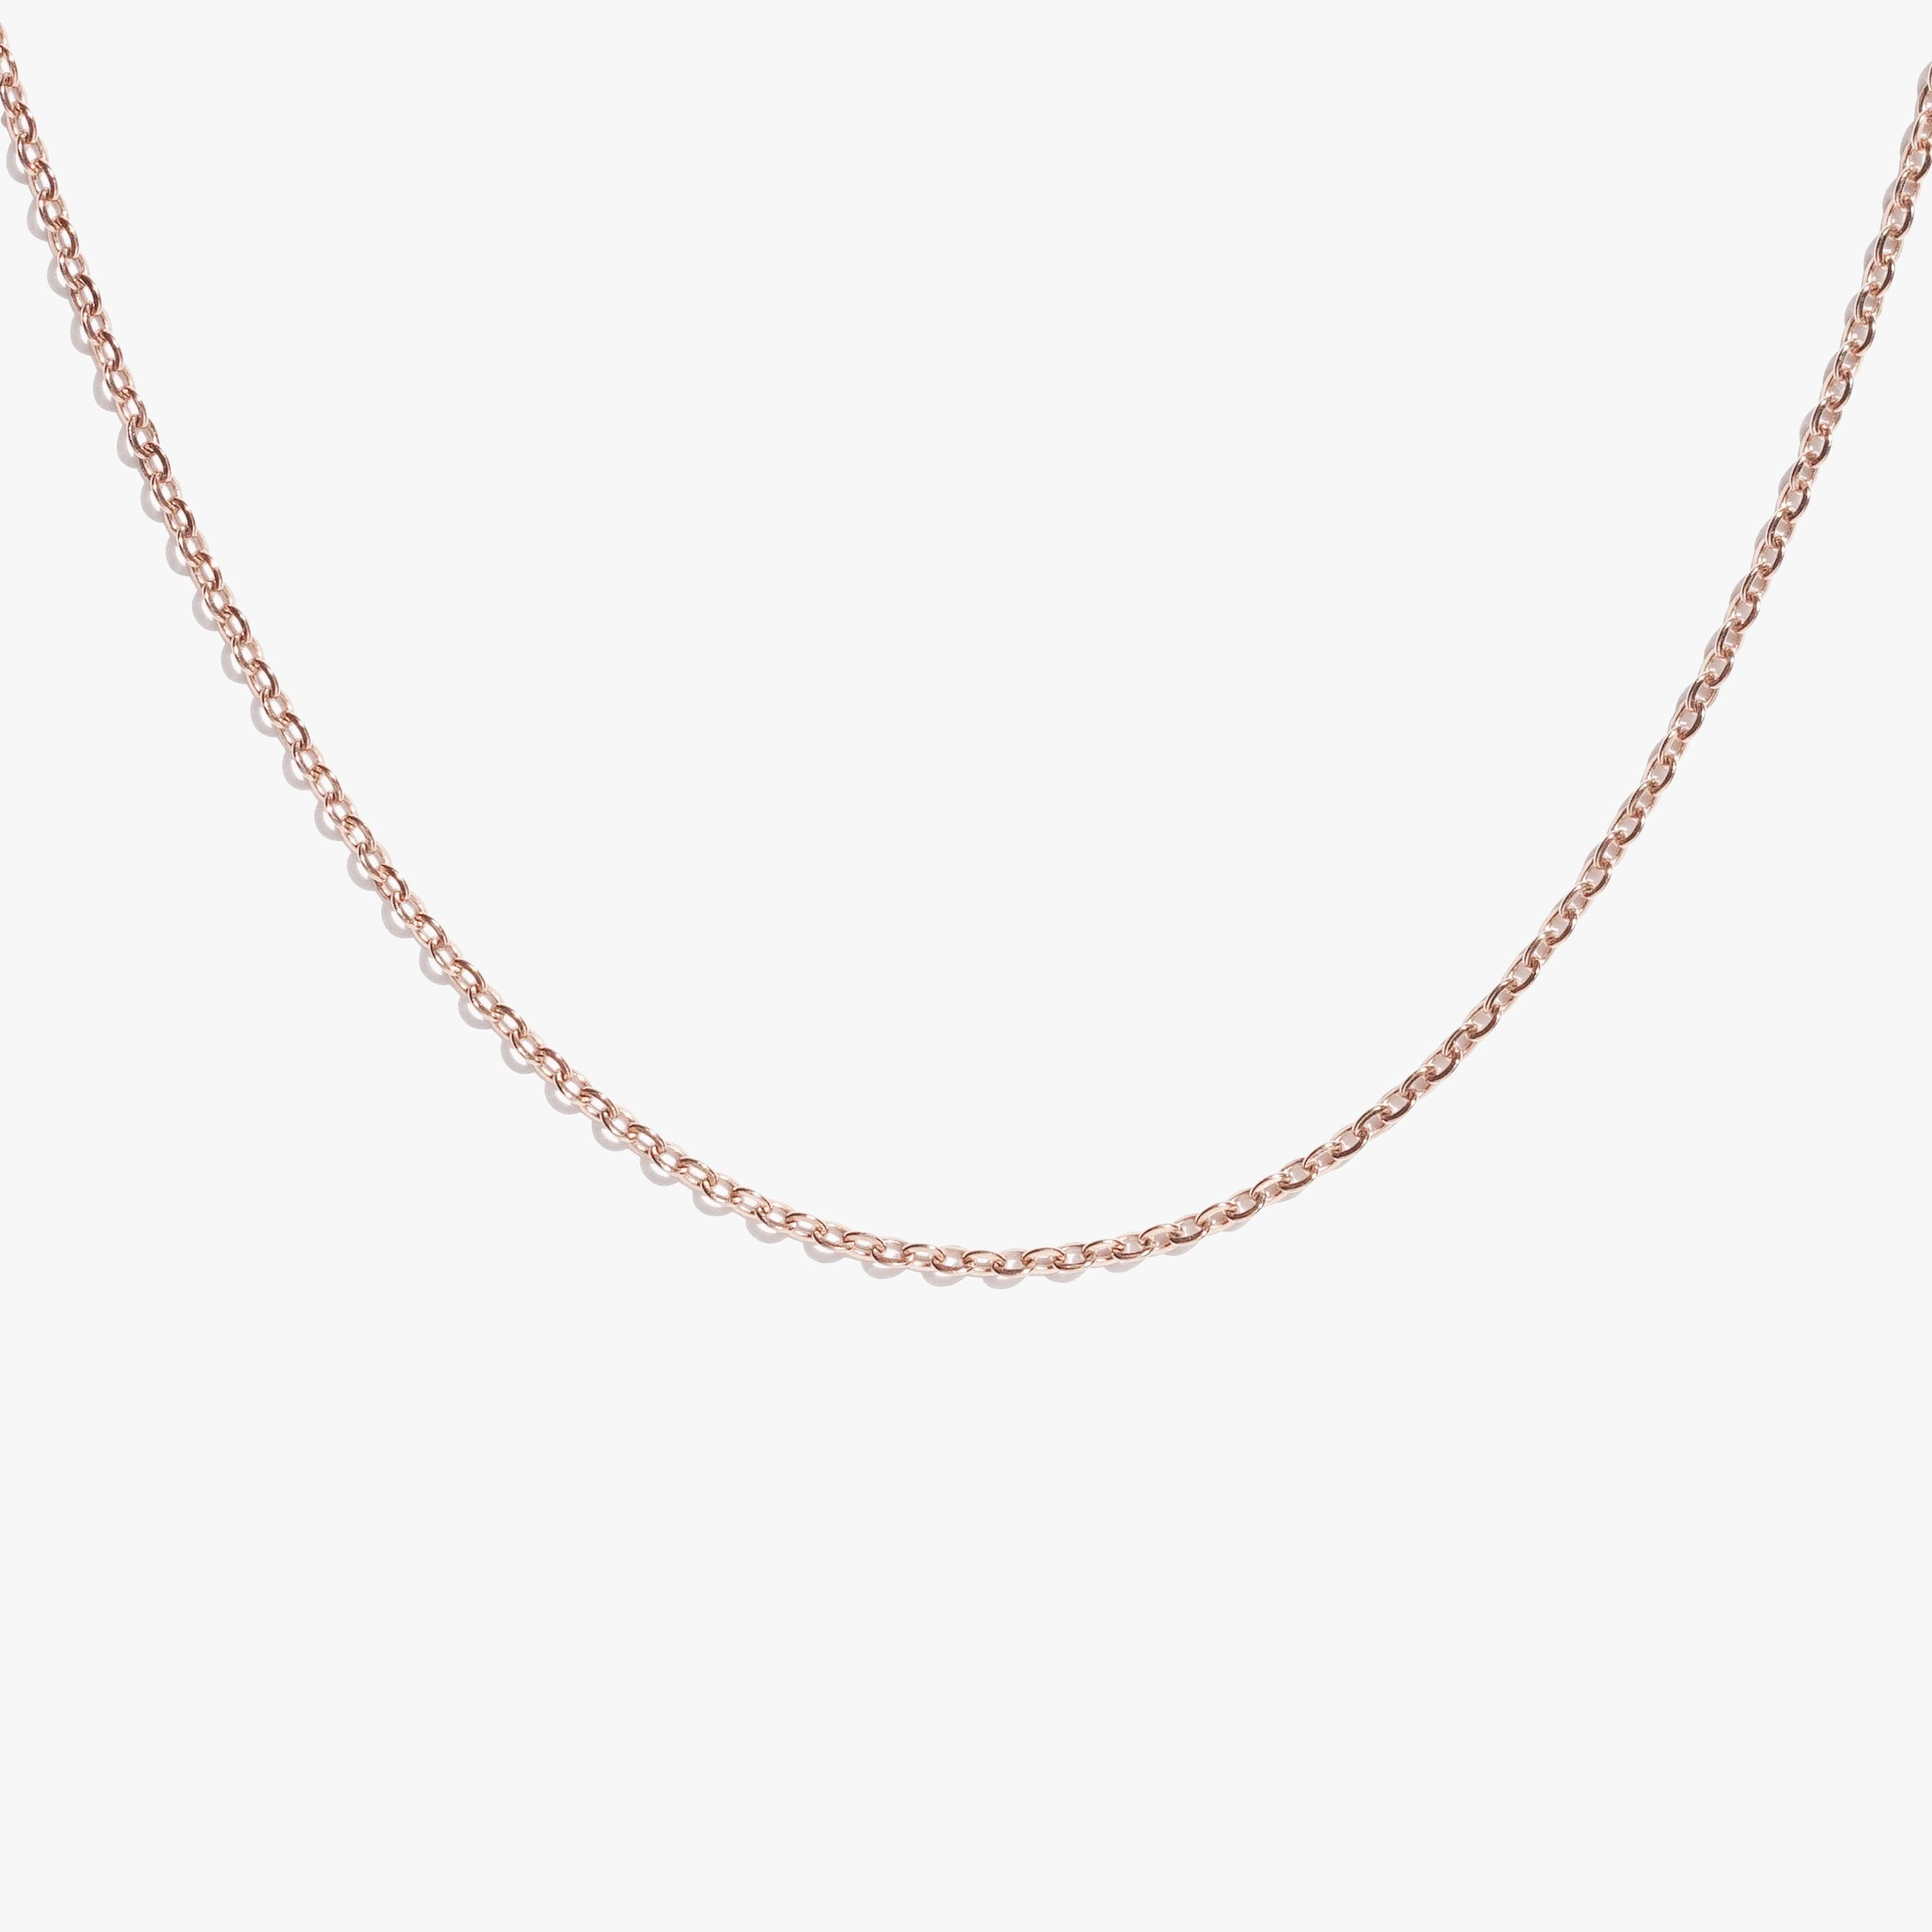 Cable Link Chain - Rose Gold